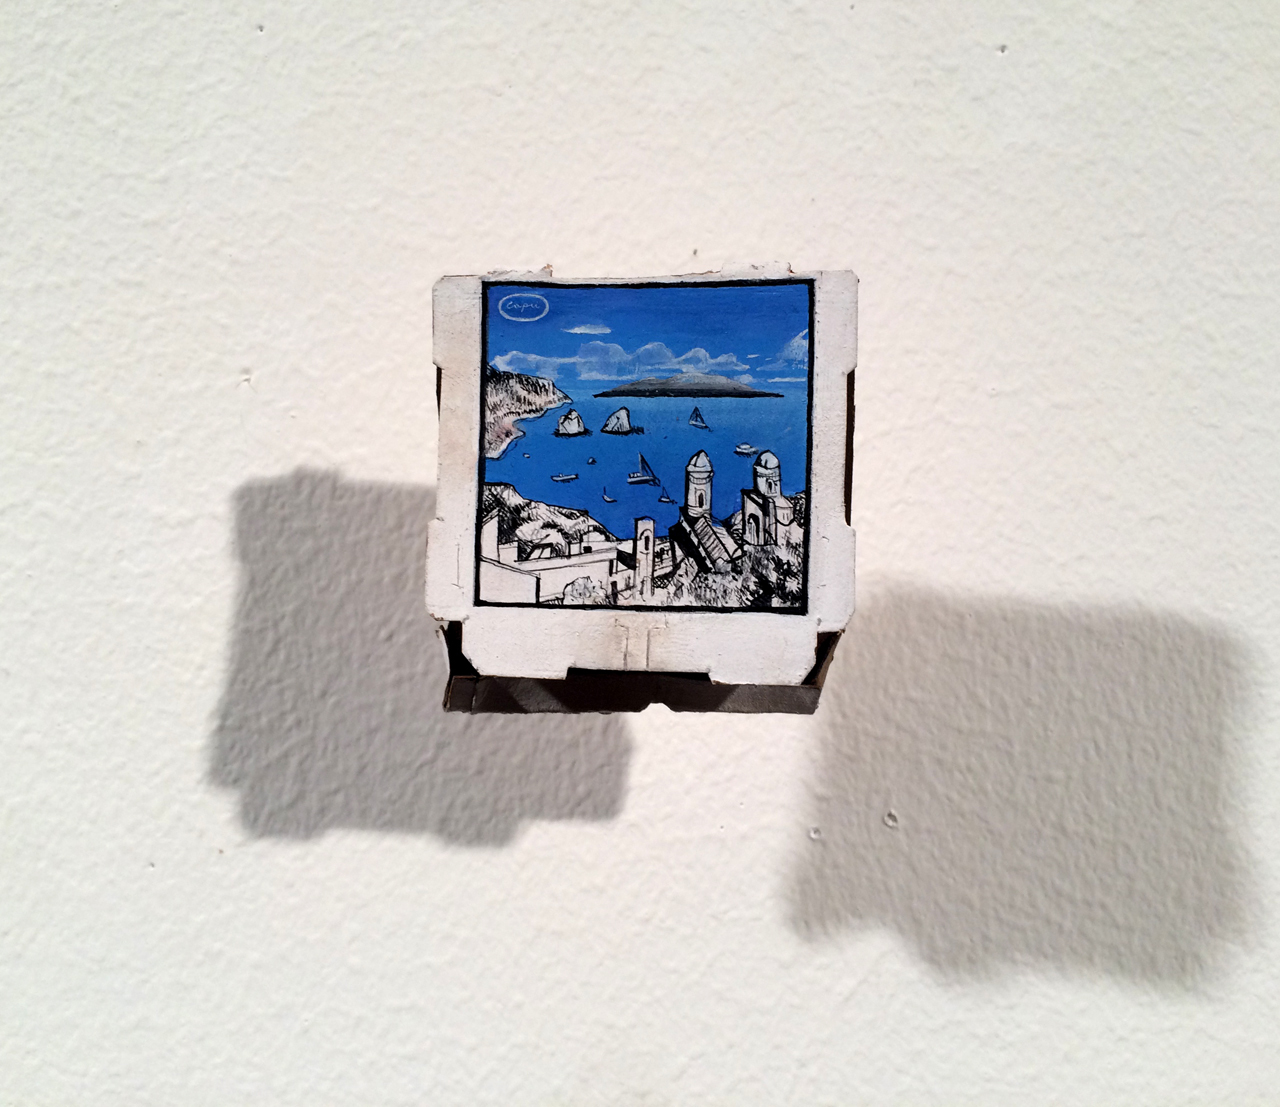 RACHEL GROBSTEIN Miniature Sculpture gouache on cut paper